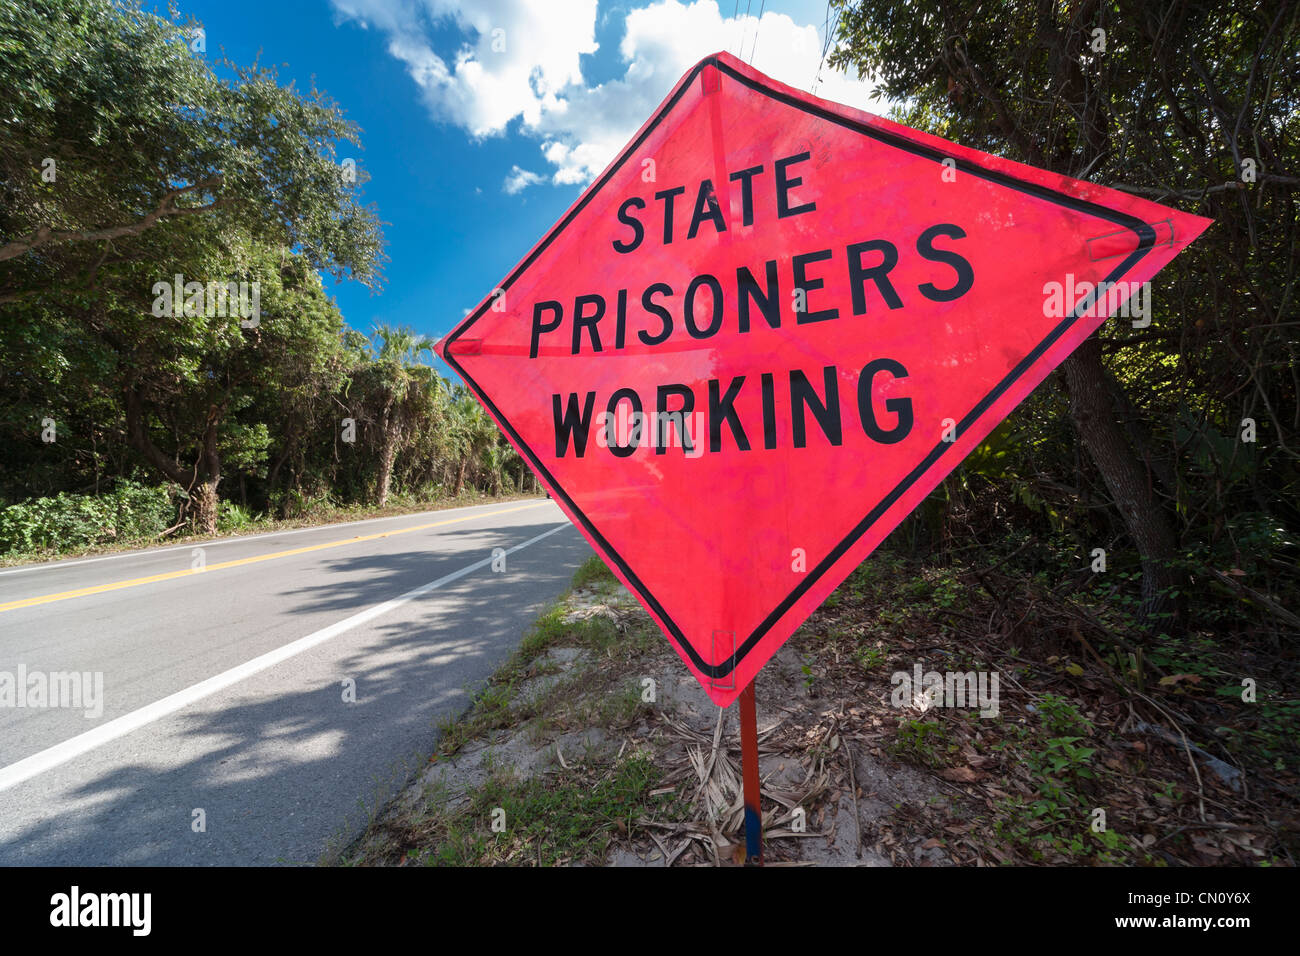 http://c7.alamy.com/comp/CN0Y6X/sign-state-prisoners-working-at-work-temporary-roadside-traffic-warning-CN0Y6X.jpg